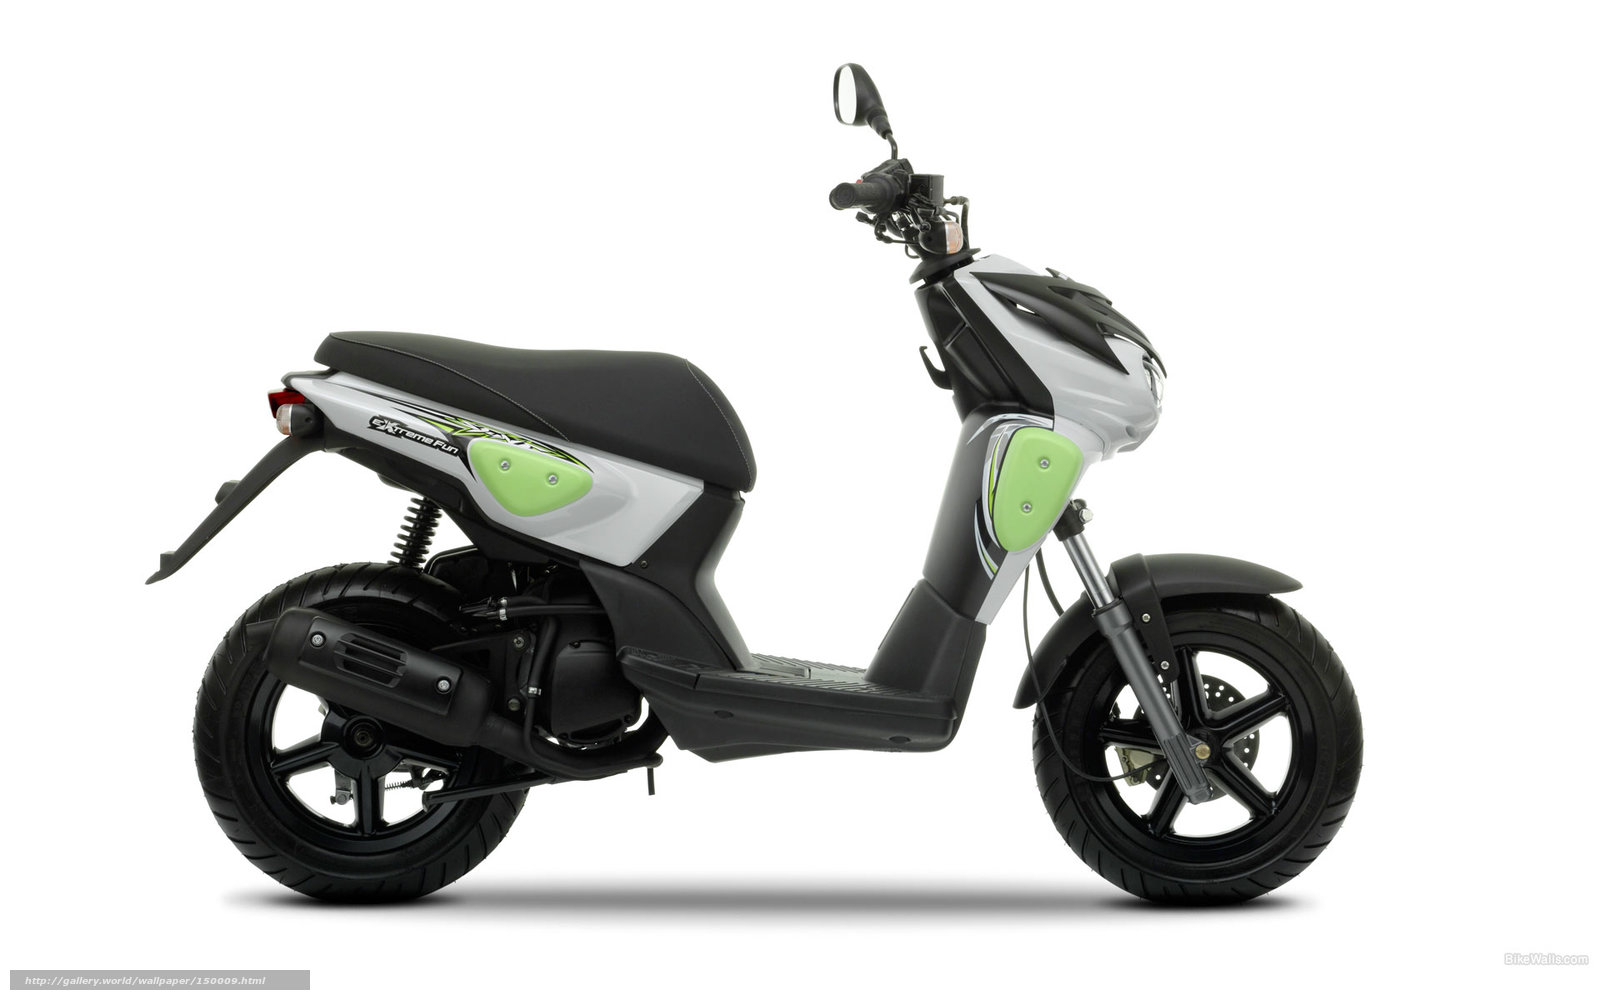 tlcharger fond d 39 ecran mbk scooter stunt nu stunt nue 2009 fonds d 39 ecran gratuits pour votre. Black Bedroom Furniture Sets. Home Design Ideas